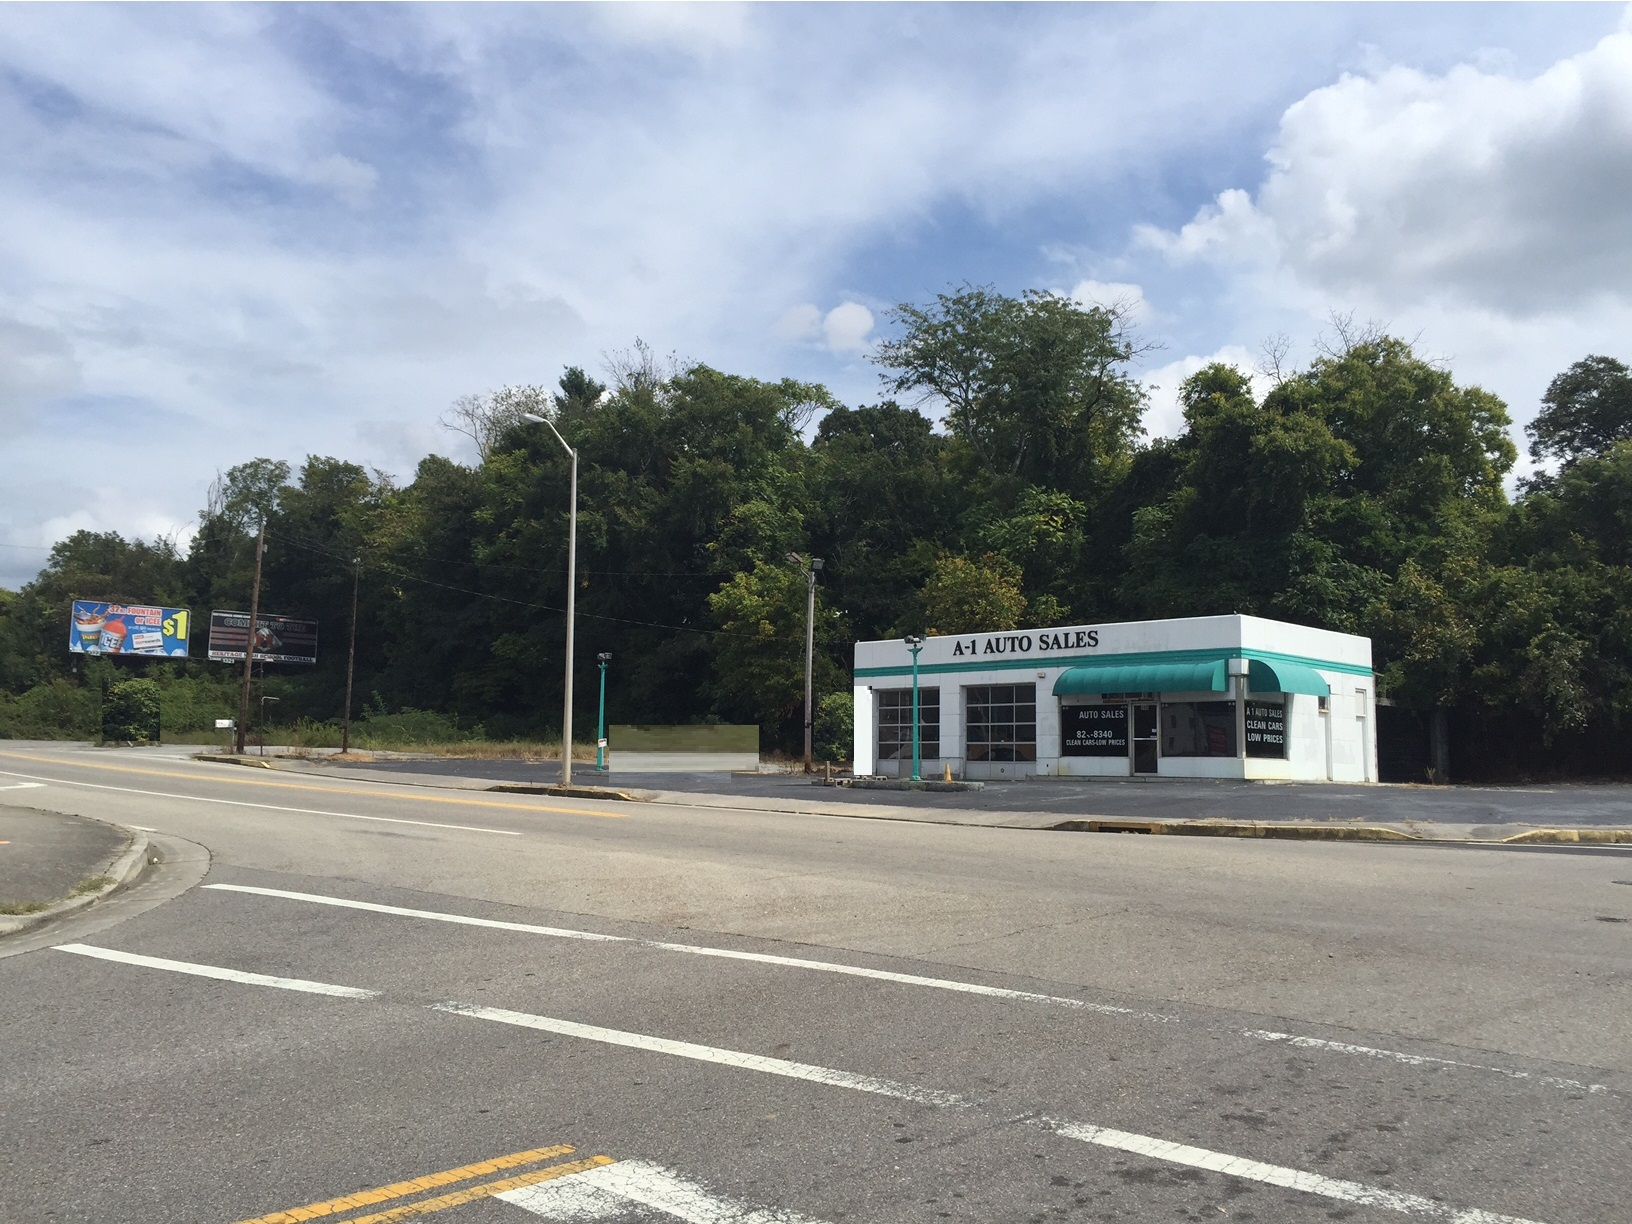 908/910 E Broadway Avenue, Maryville, Tennessee 37804